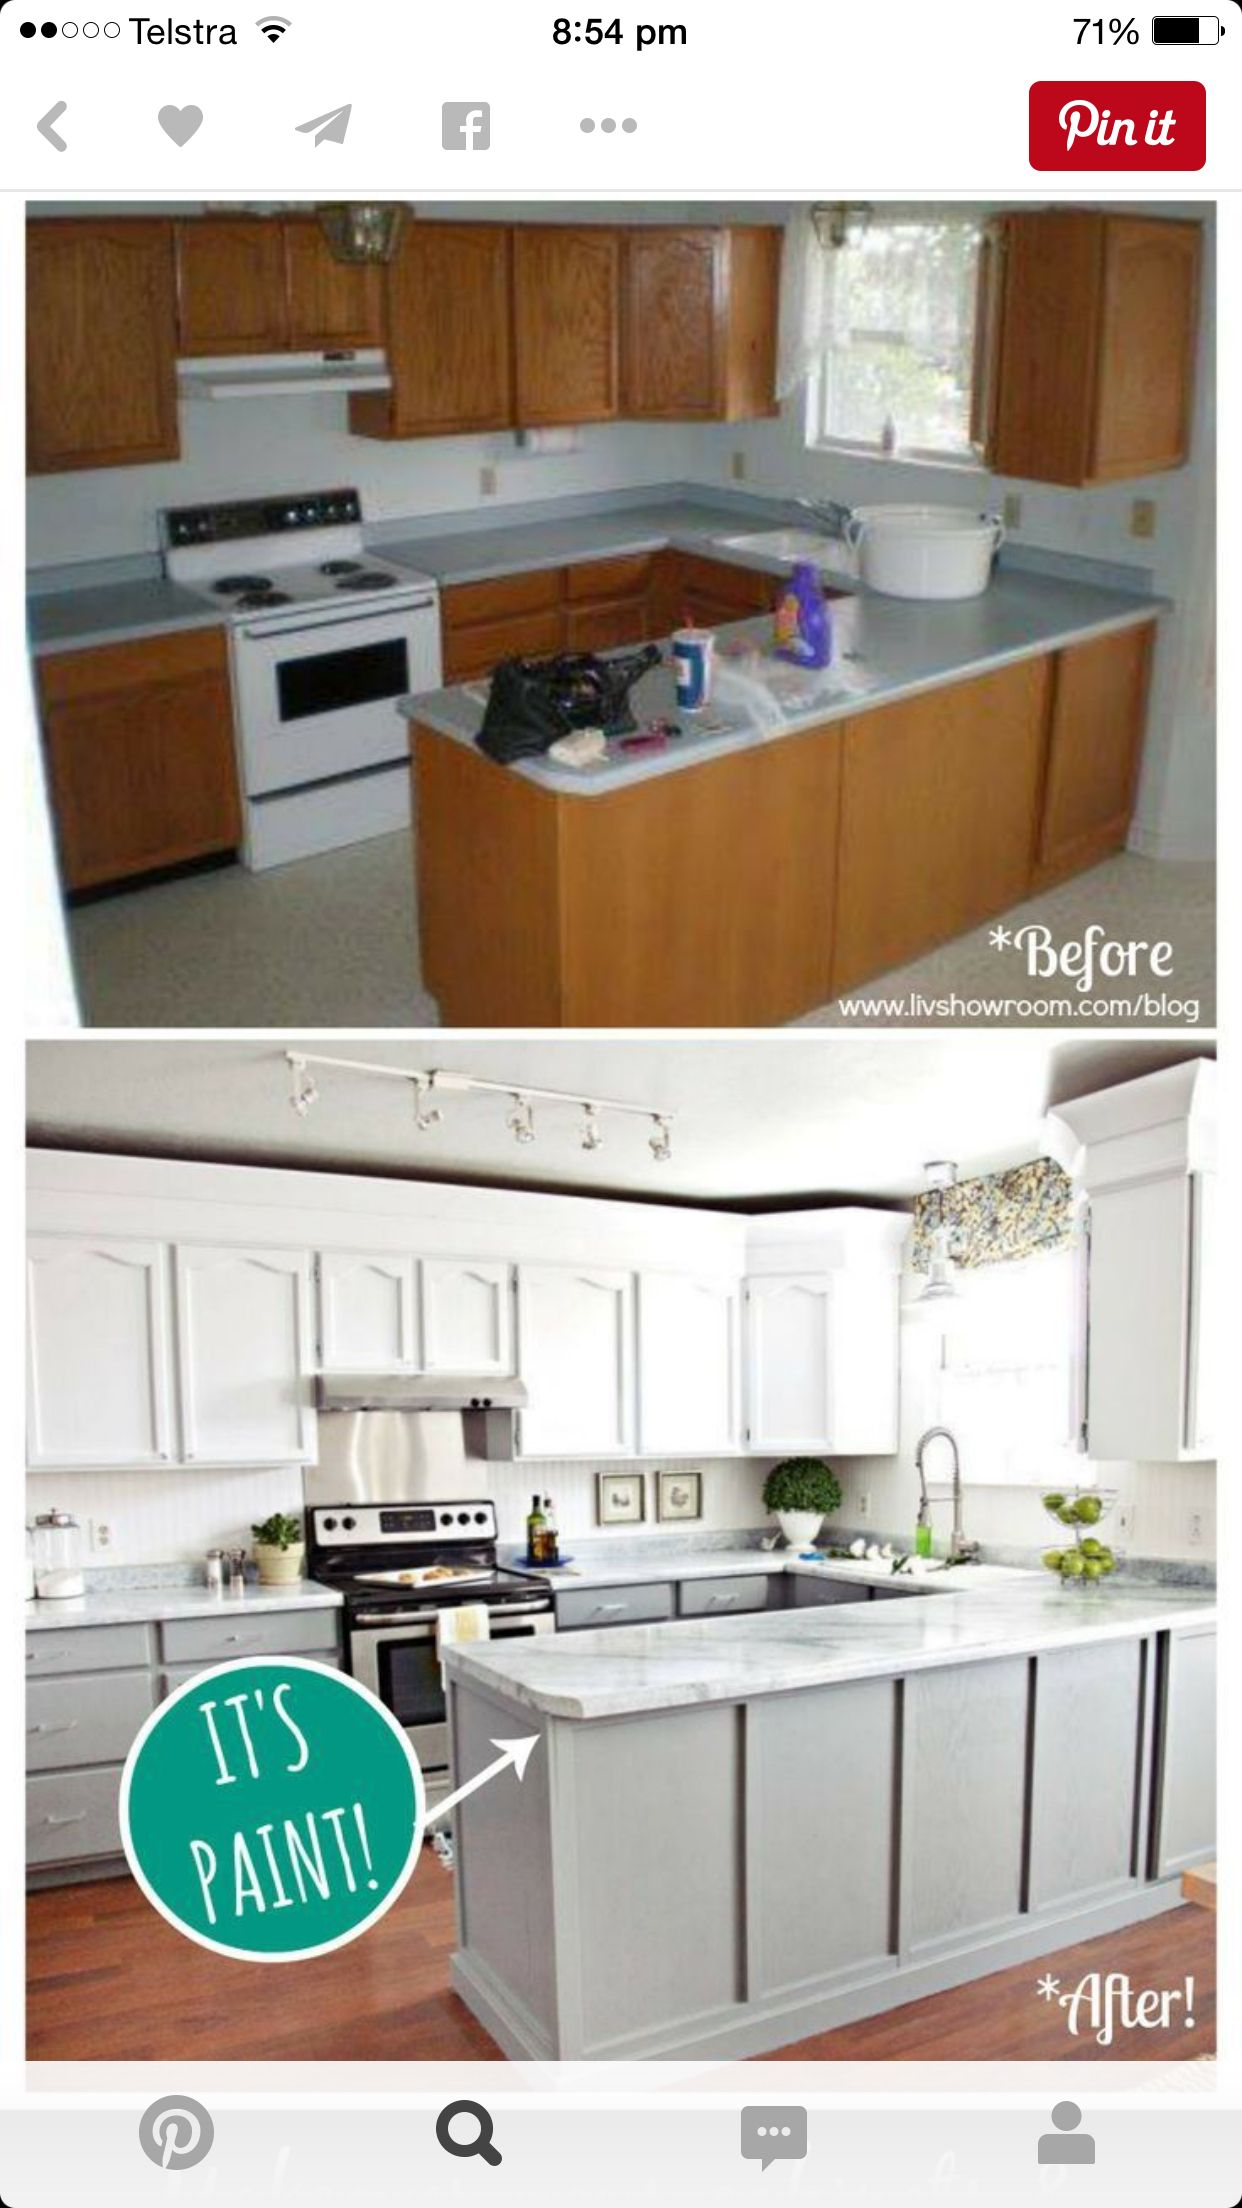 Cheap Reno On Kitchen Layout Is The Key I Think To Be Able To Transform On A Budget See How No Updated Kitchen Kitchen Cabinets Makeover Kitchen Renovation